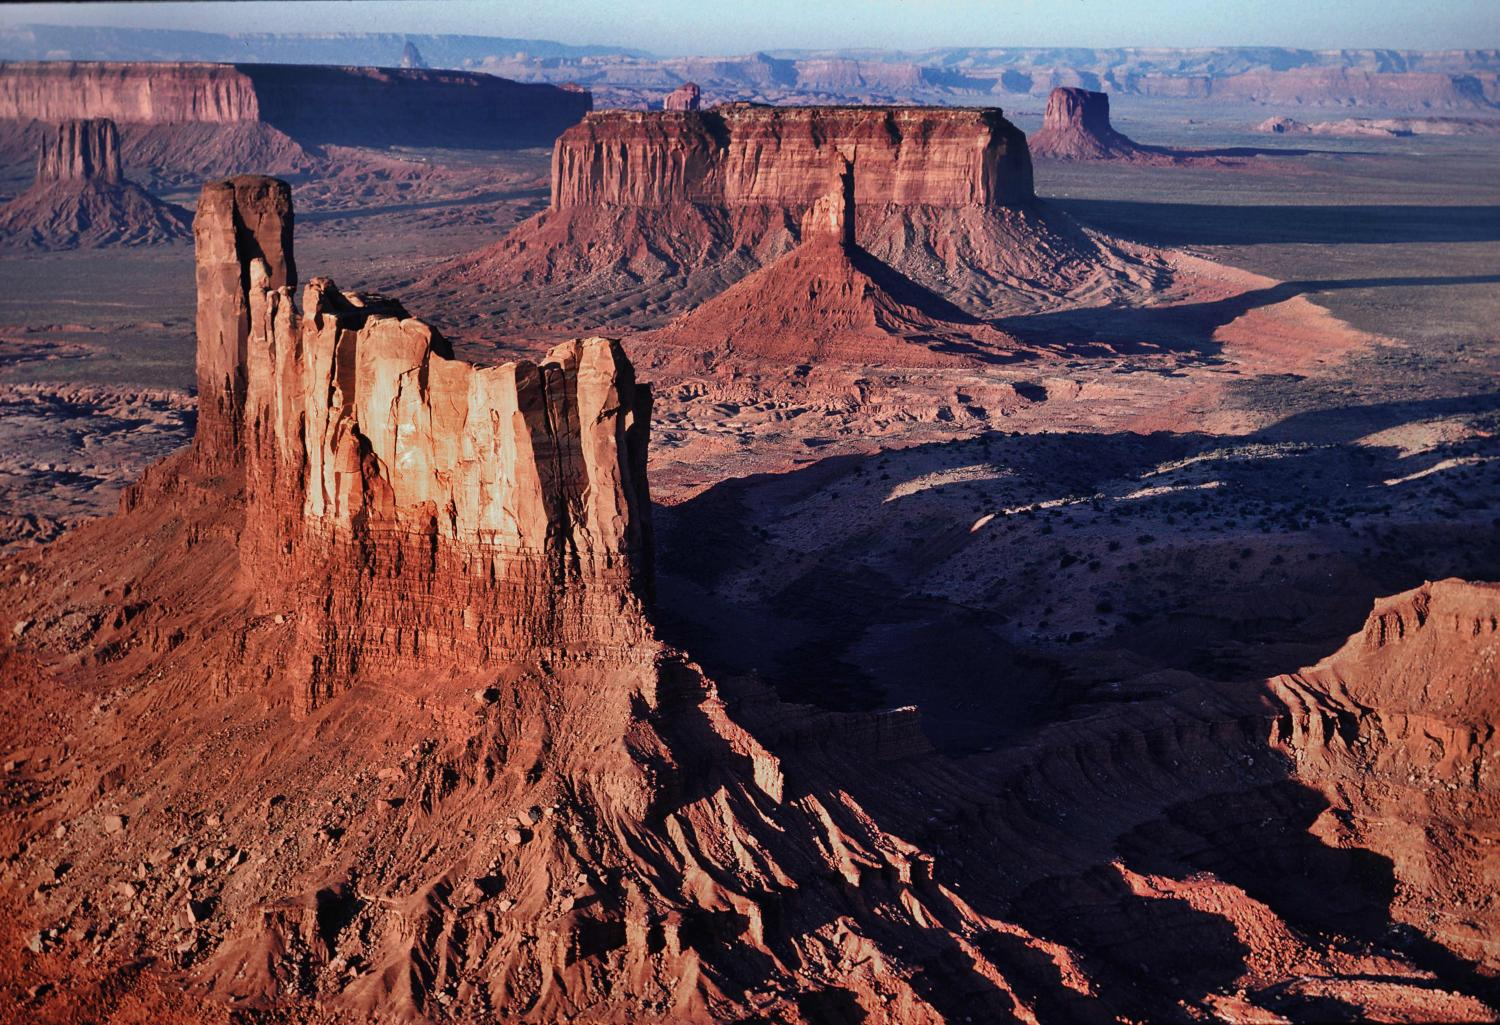 MONUMENT VALLEY AERIAL -THIS WHOLE AREA OF SOUTHERN UTAH HAS SOME OF THE MOST COMPLETE LEGENDS OF GIANTS, MONSTERS AND STARGATES